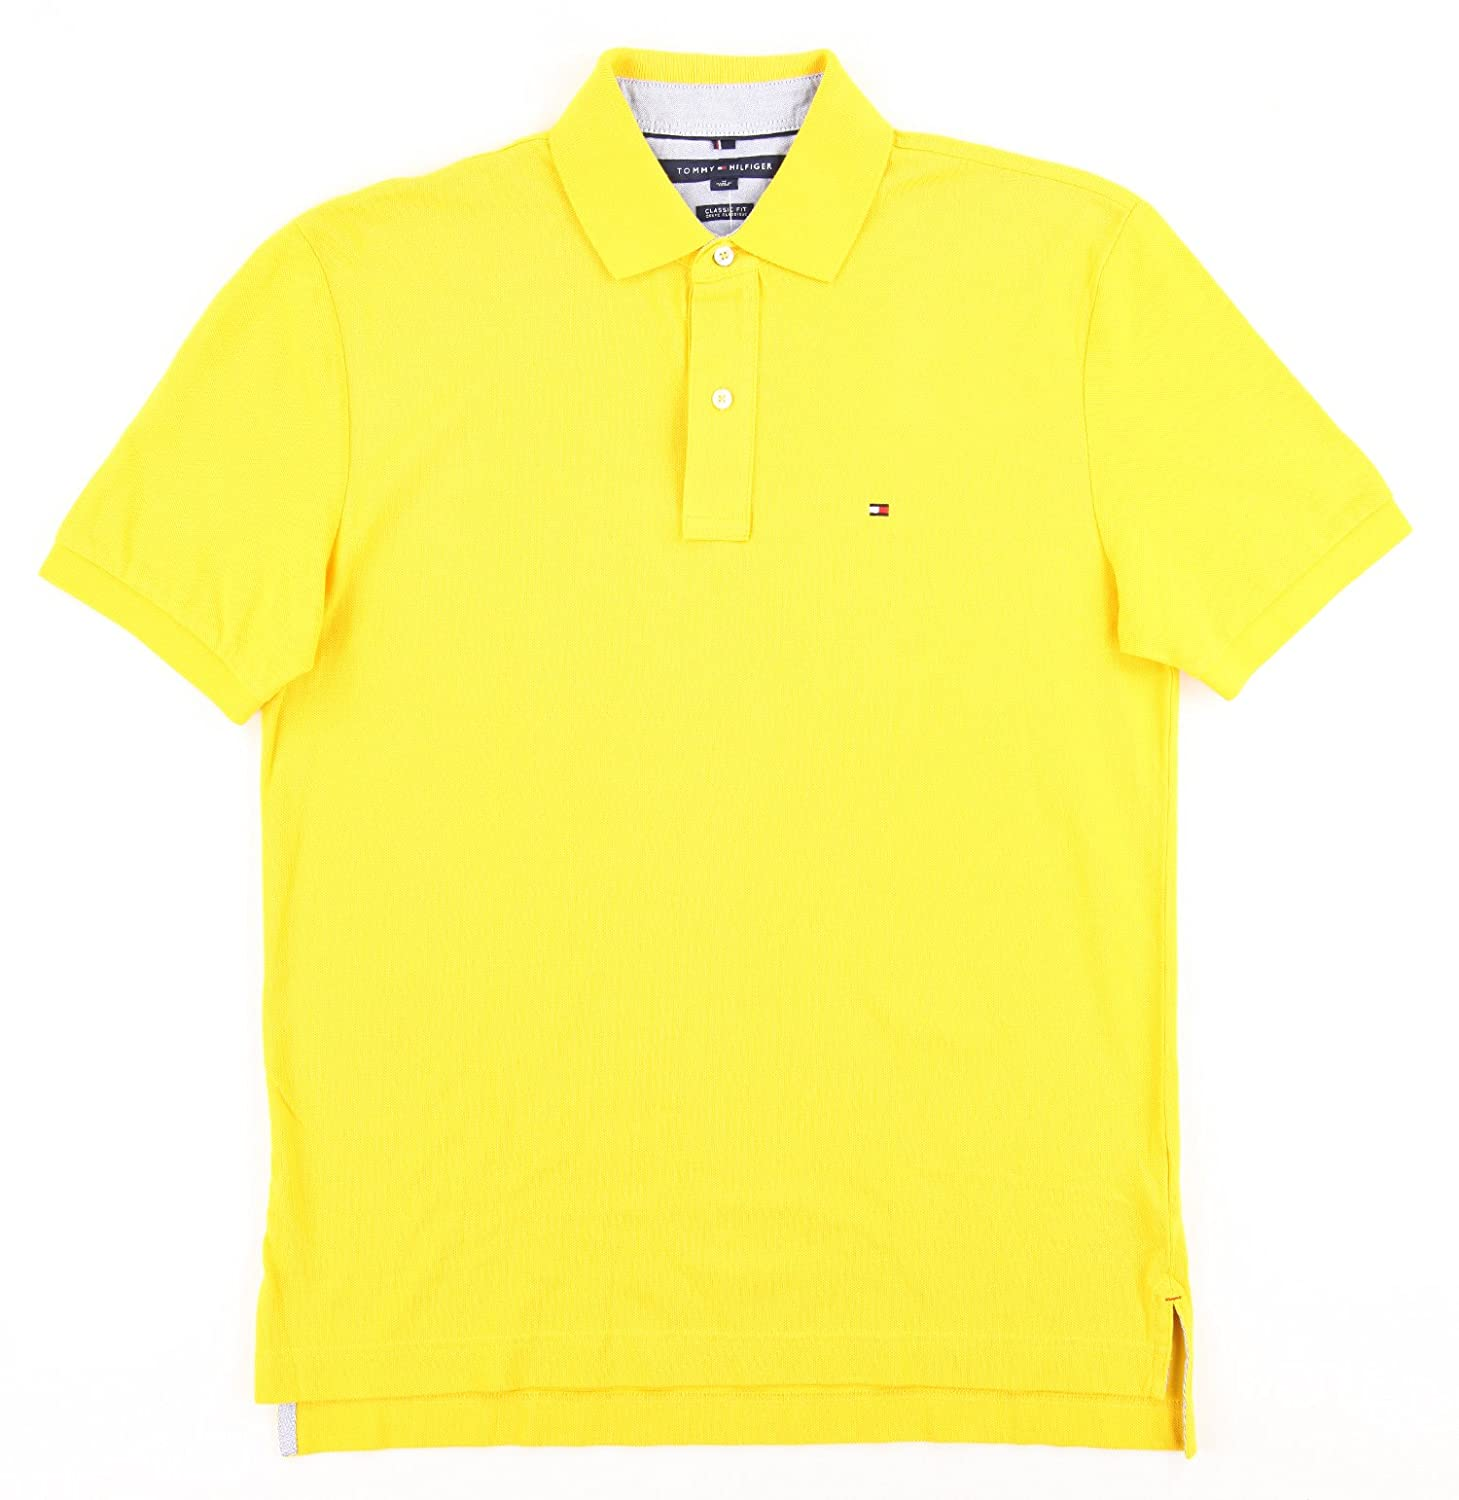 Tommy Hilfiger Yellow Polo